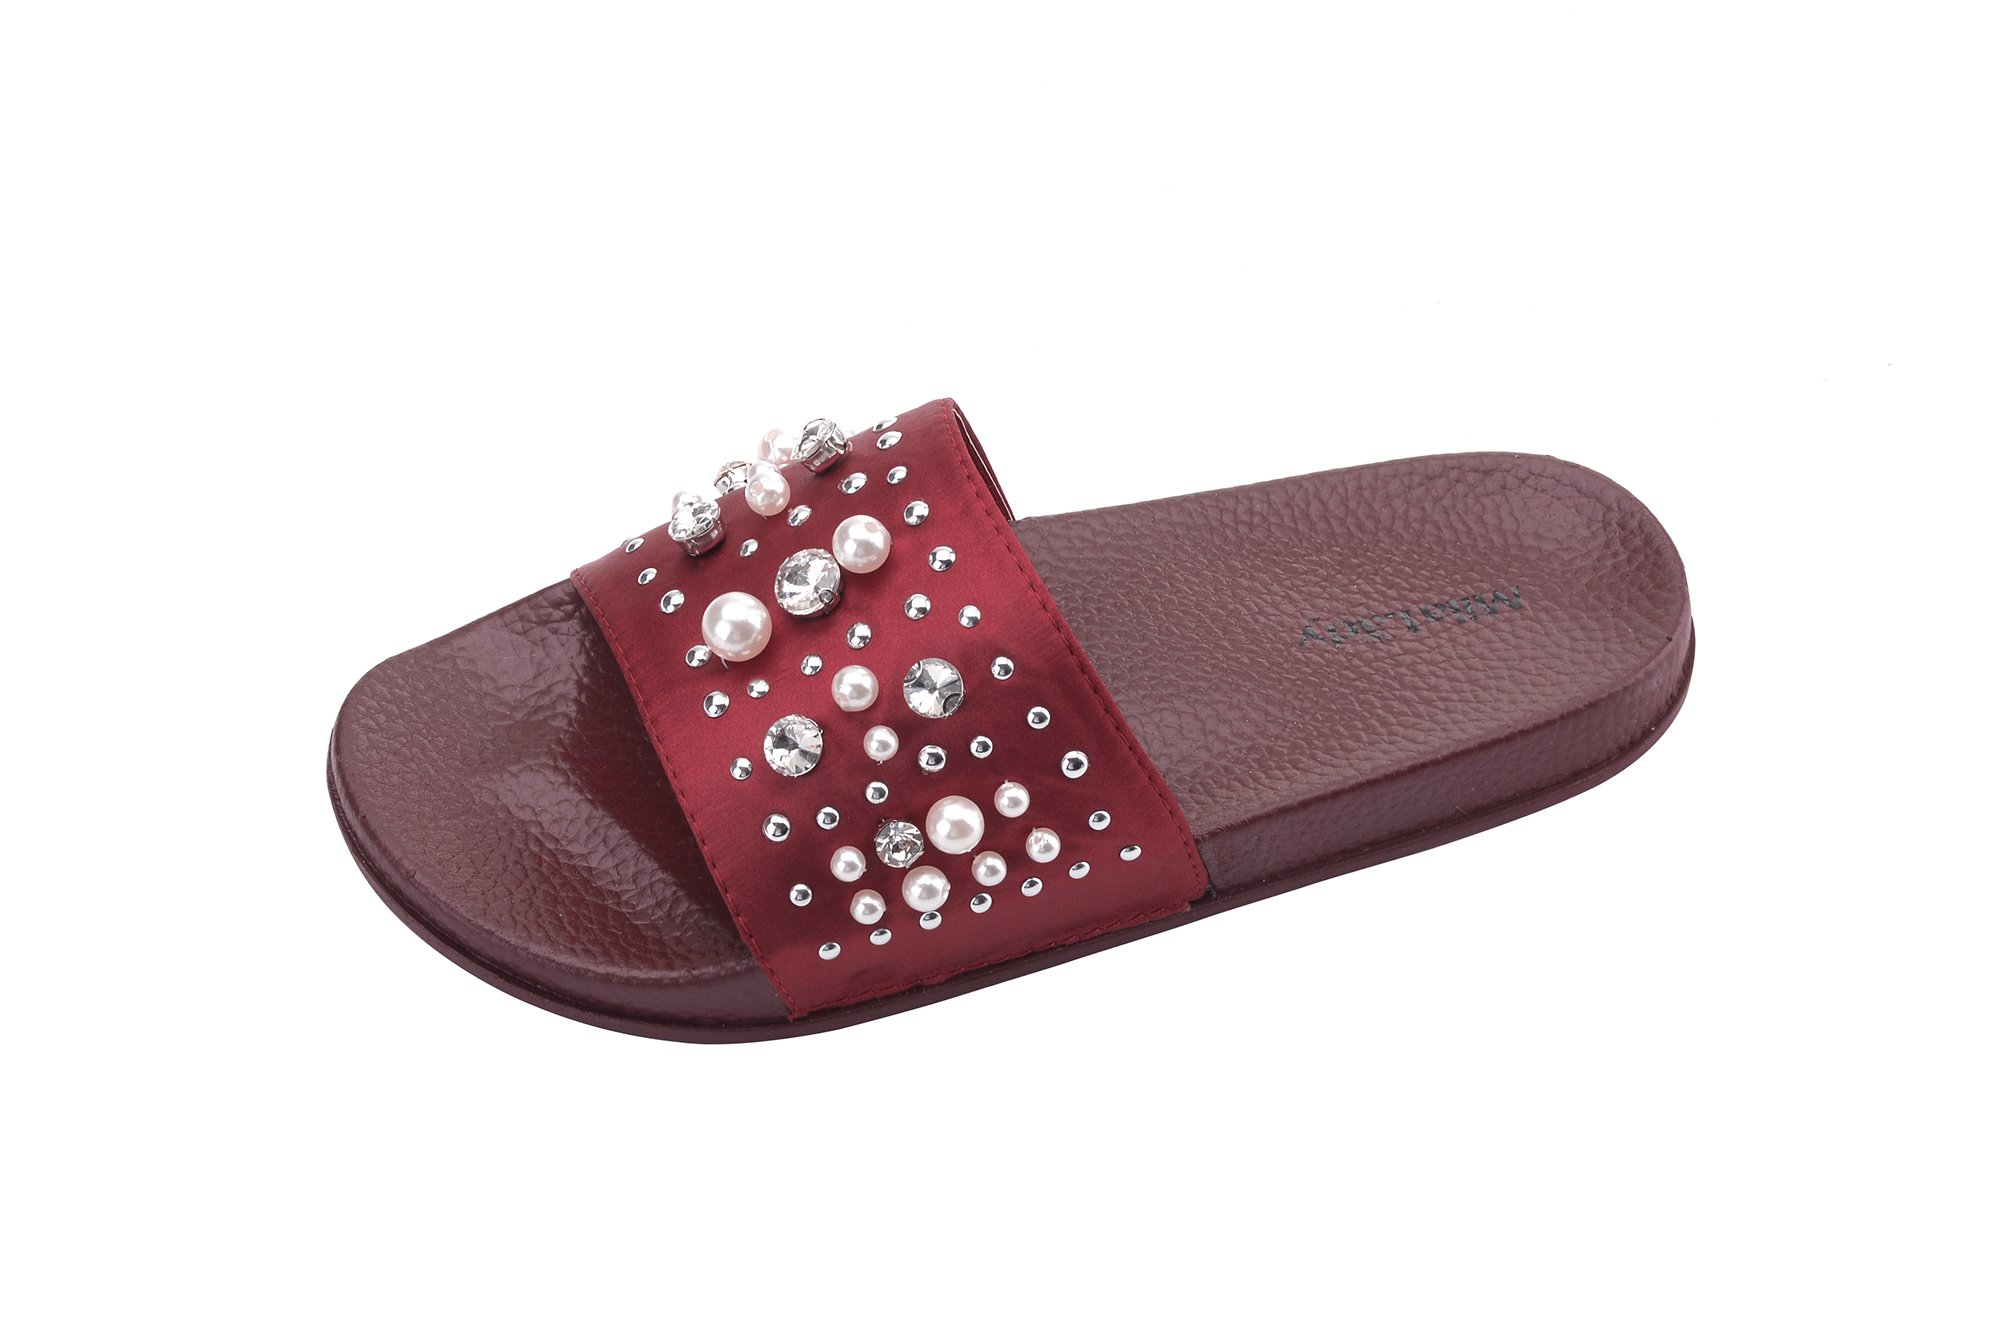 Ashley A Collection Sandy Women's Fashion Slipper with Pearl and Rhinestone Upper Slip On Silky Slide Sandal, RED6